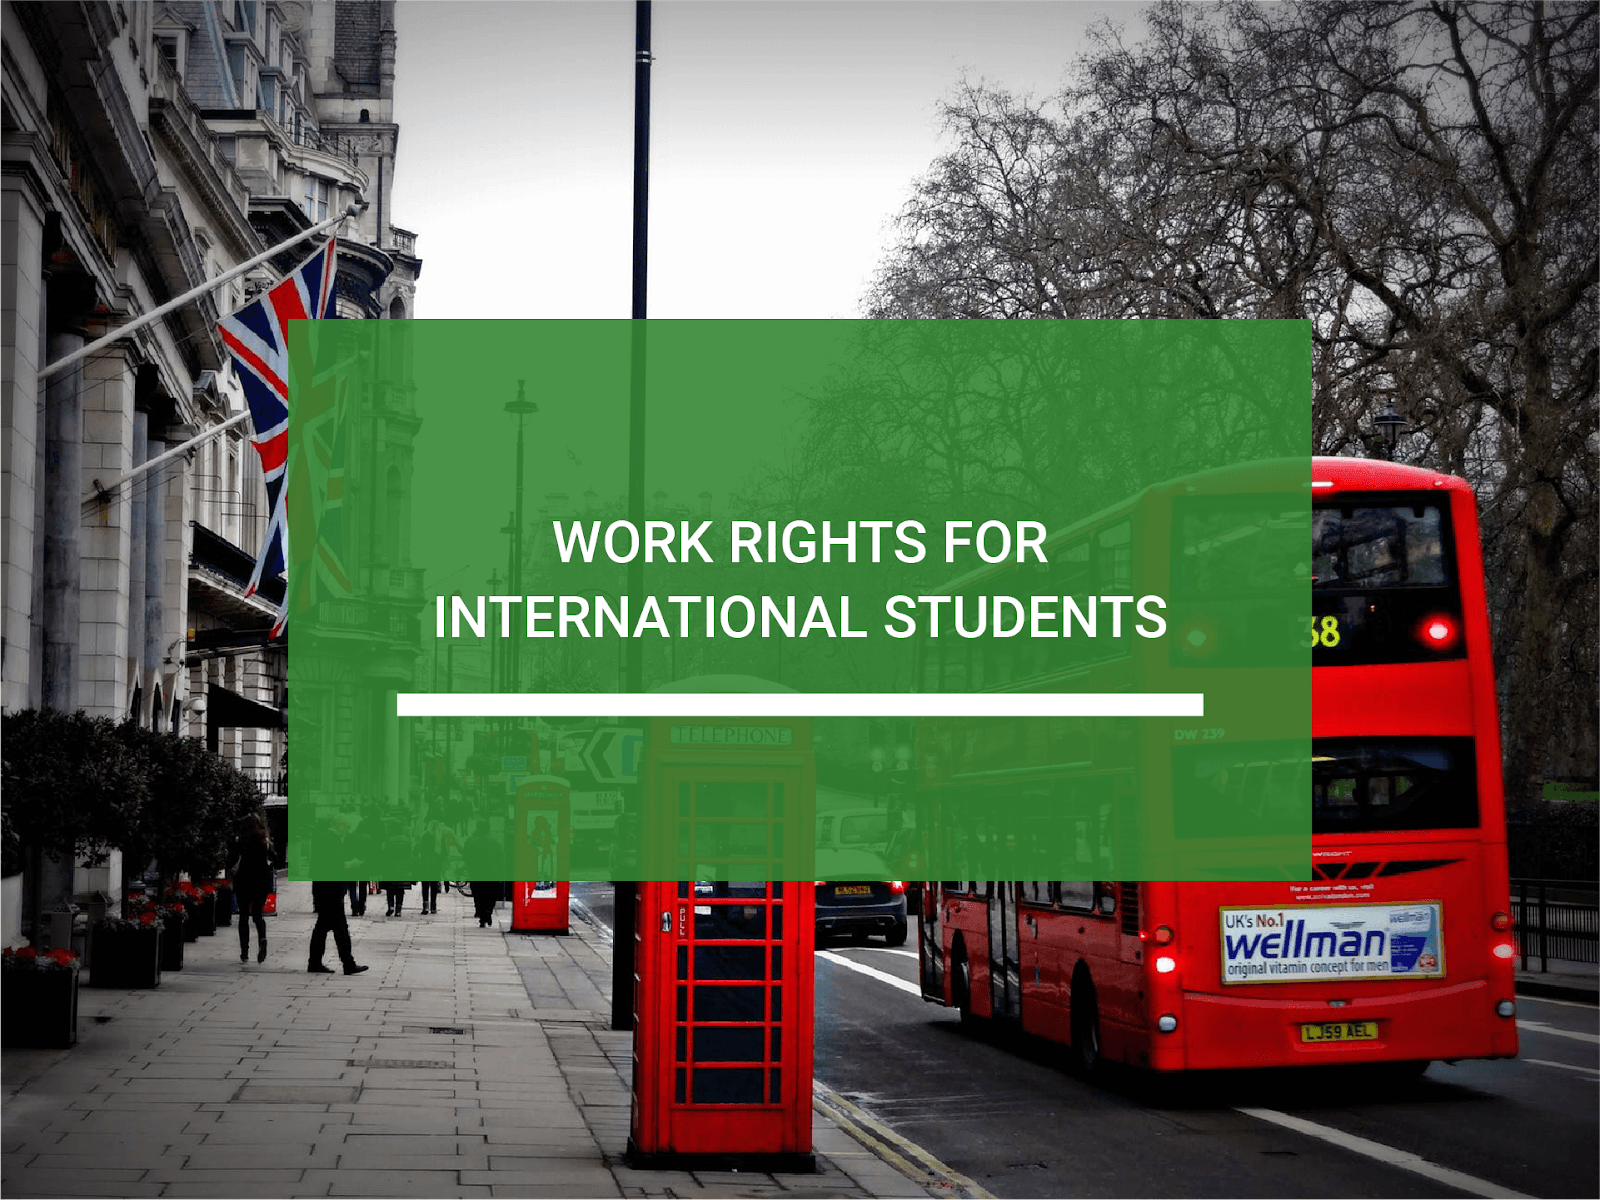 UK Re-Introduces Two-Year Work Rights For International Students